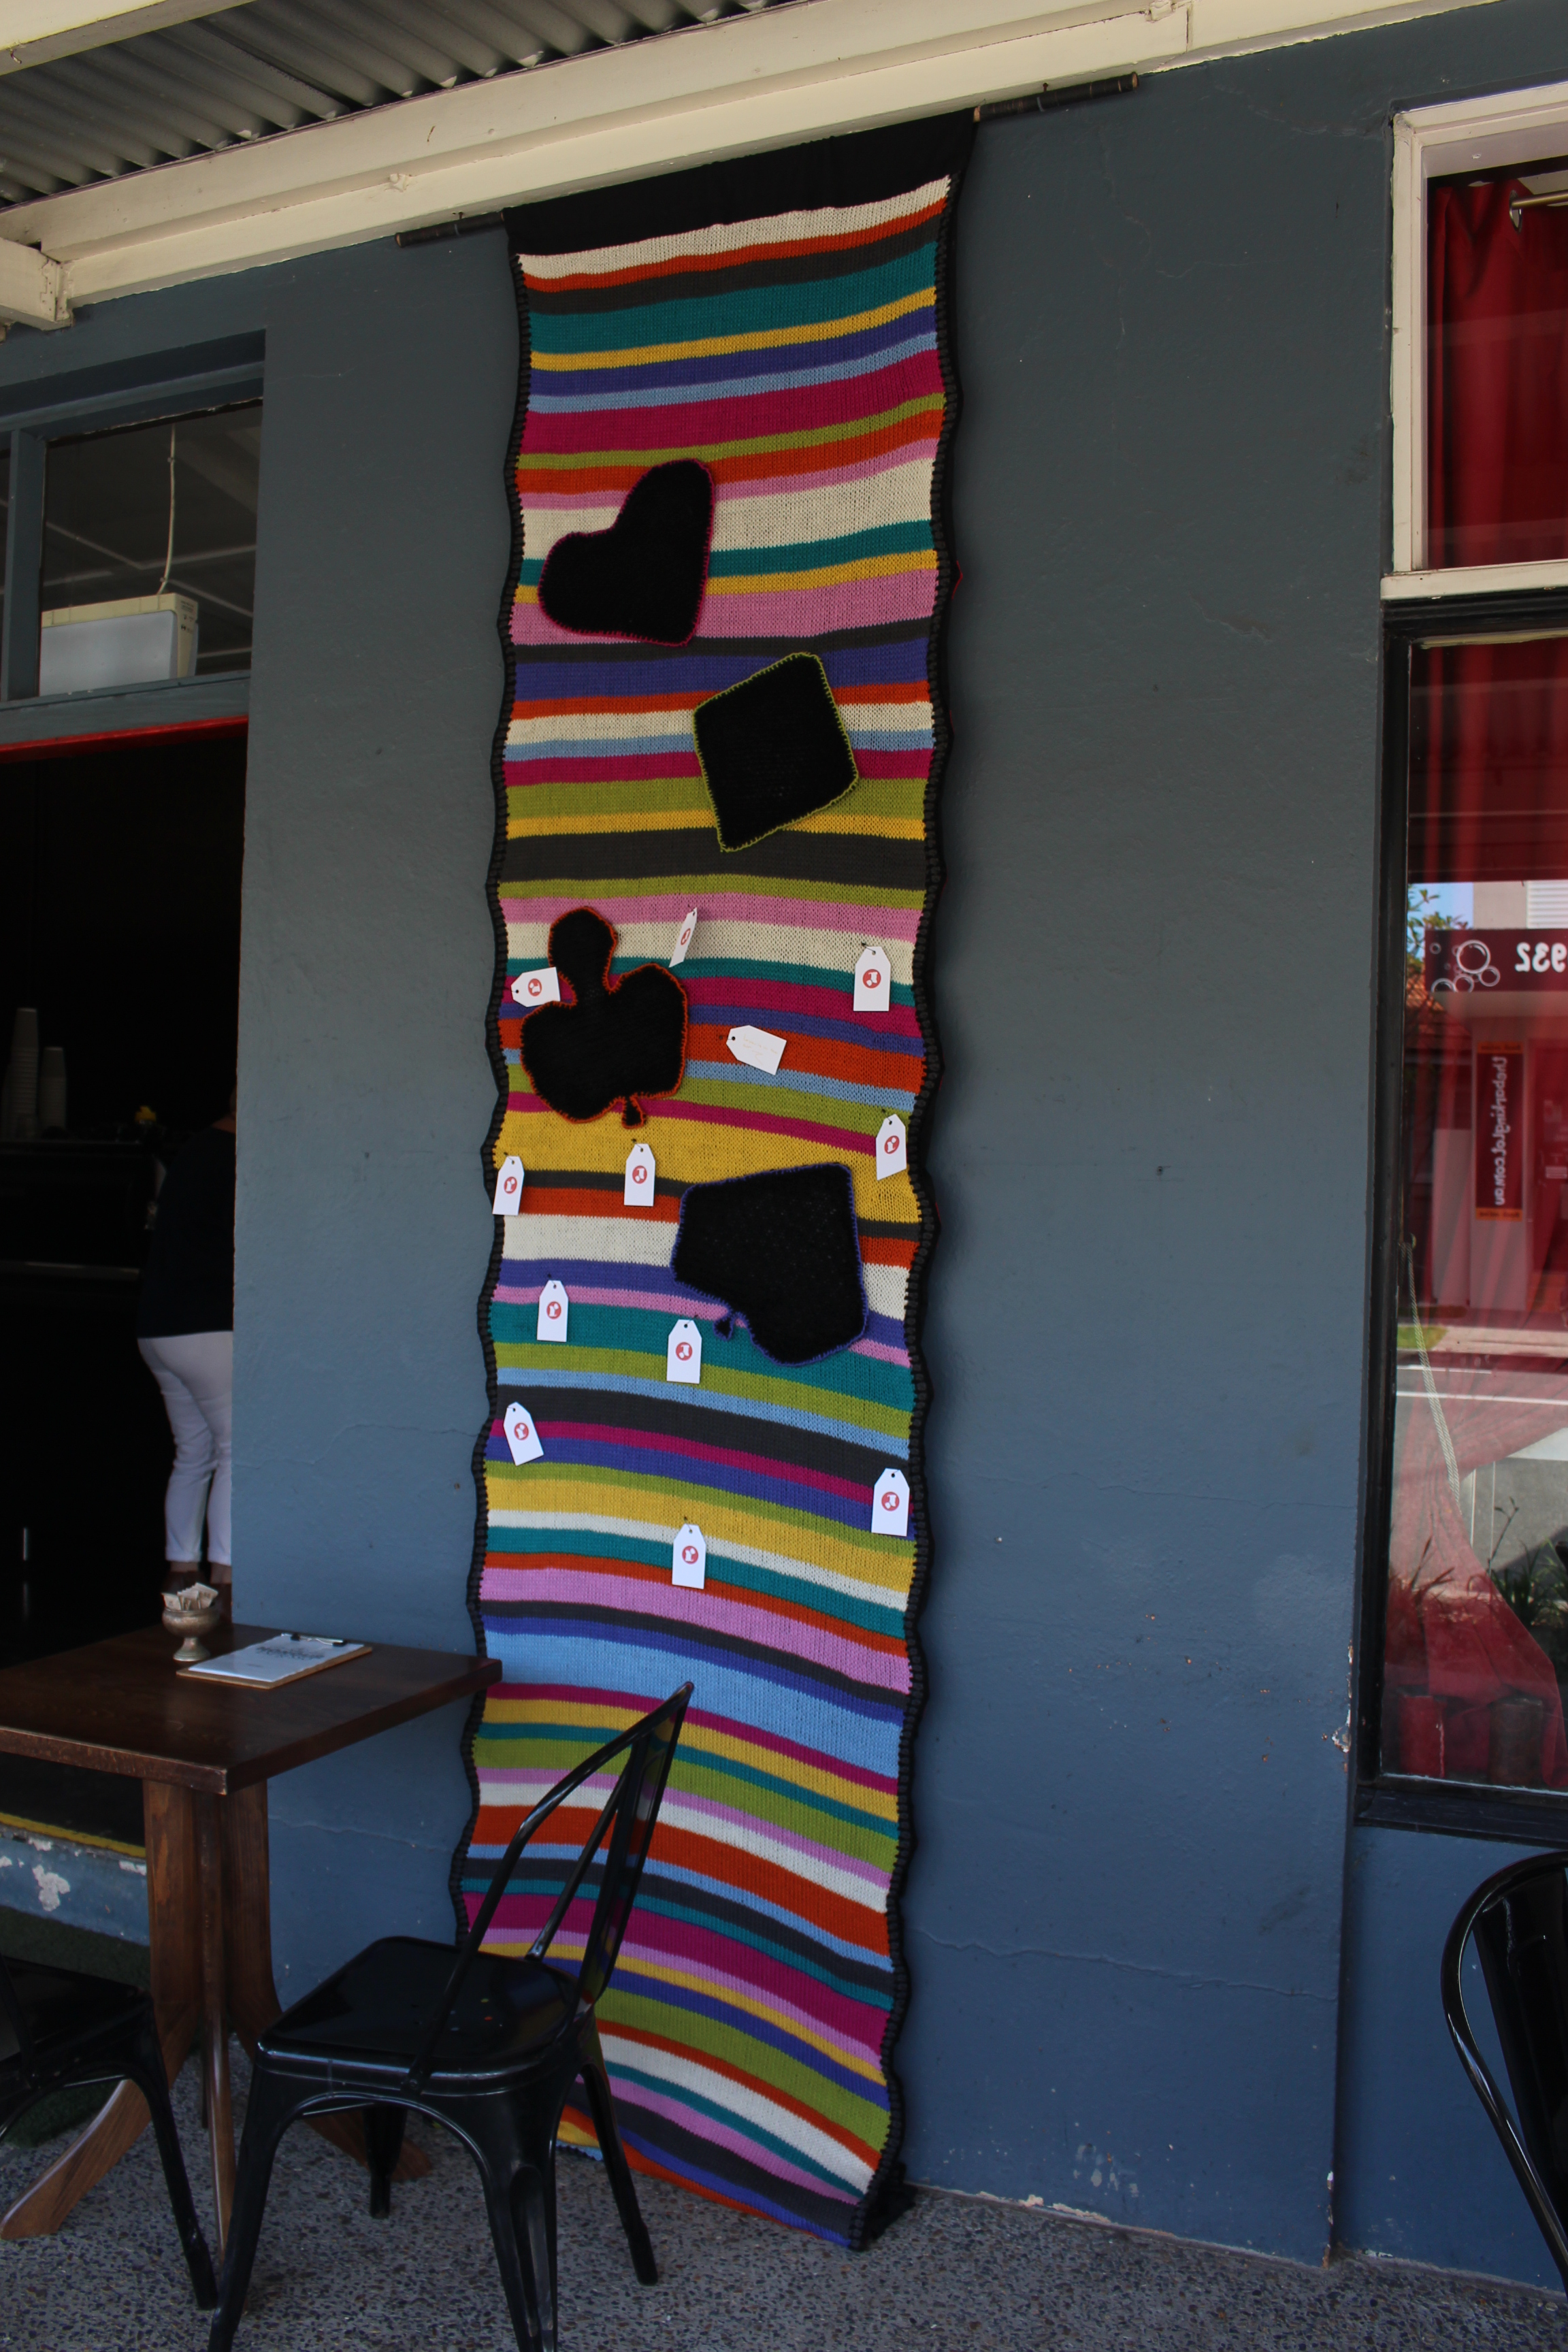 The banner in place. I left cards and some gold pens for people to write messages to the cafe owners.